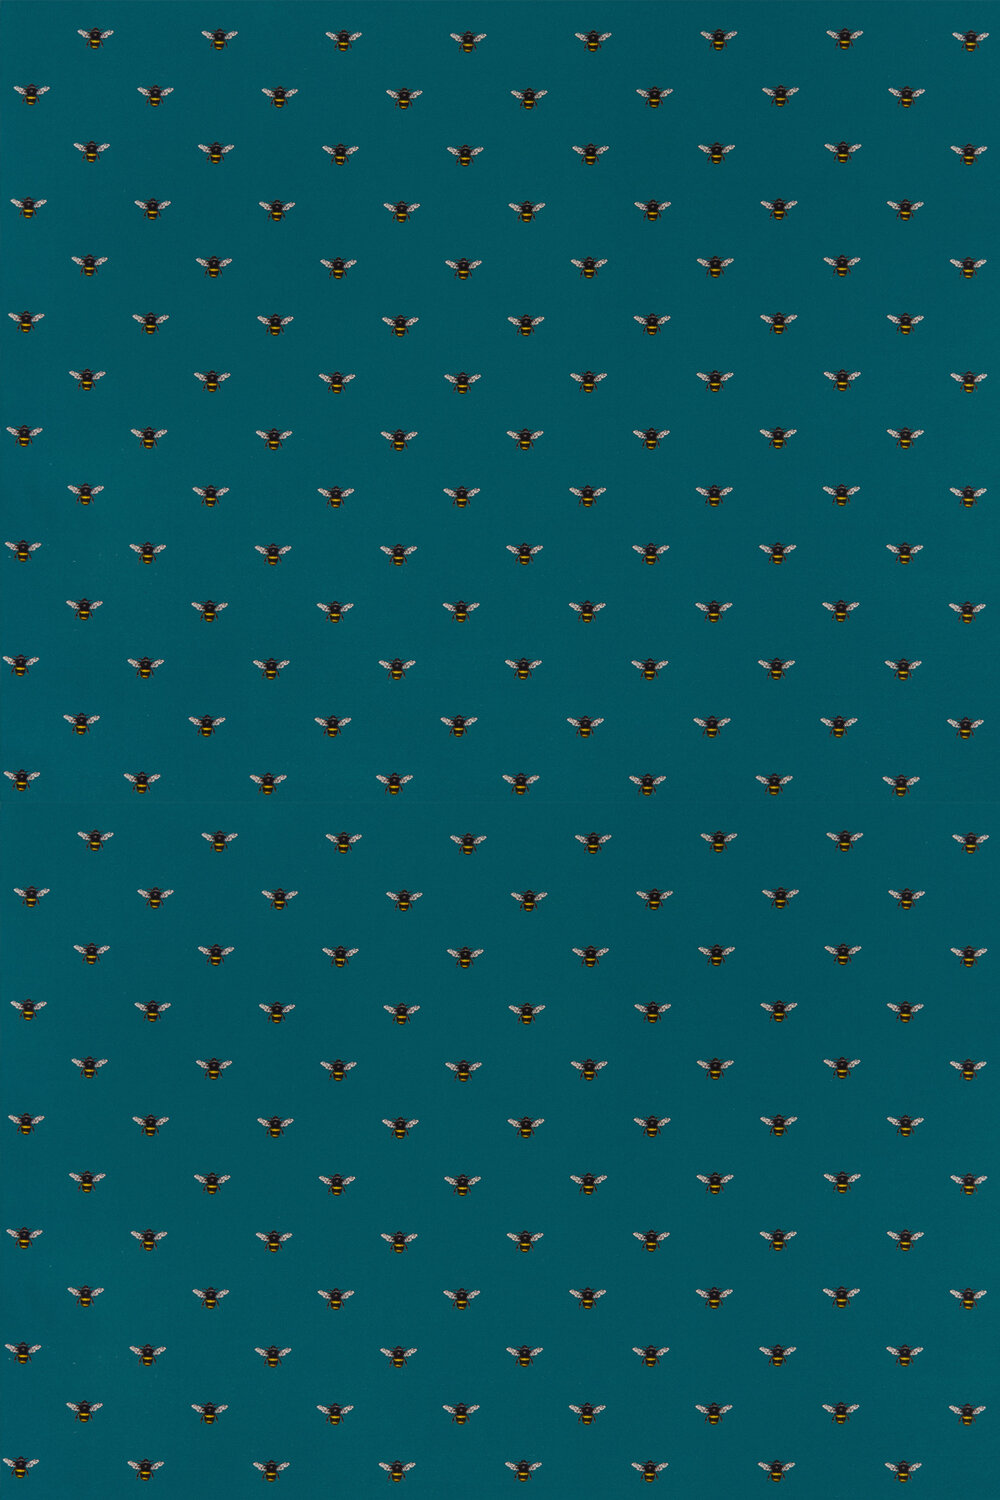 Clarke & Clarke Abeja (bee) Teal Fabric - Product code: F1325/05